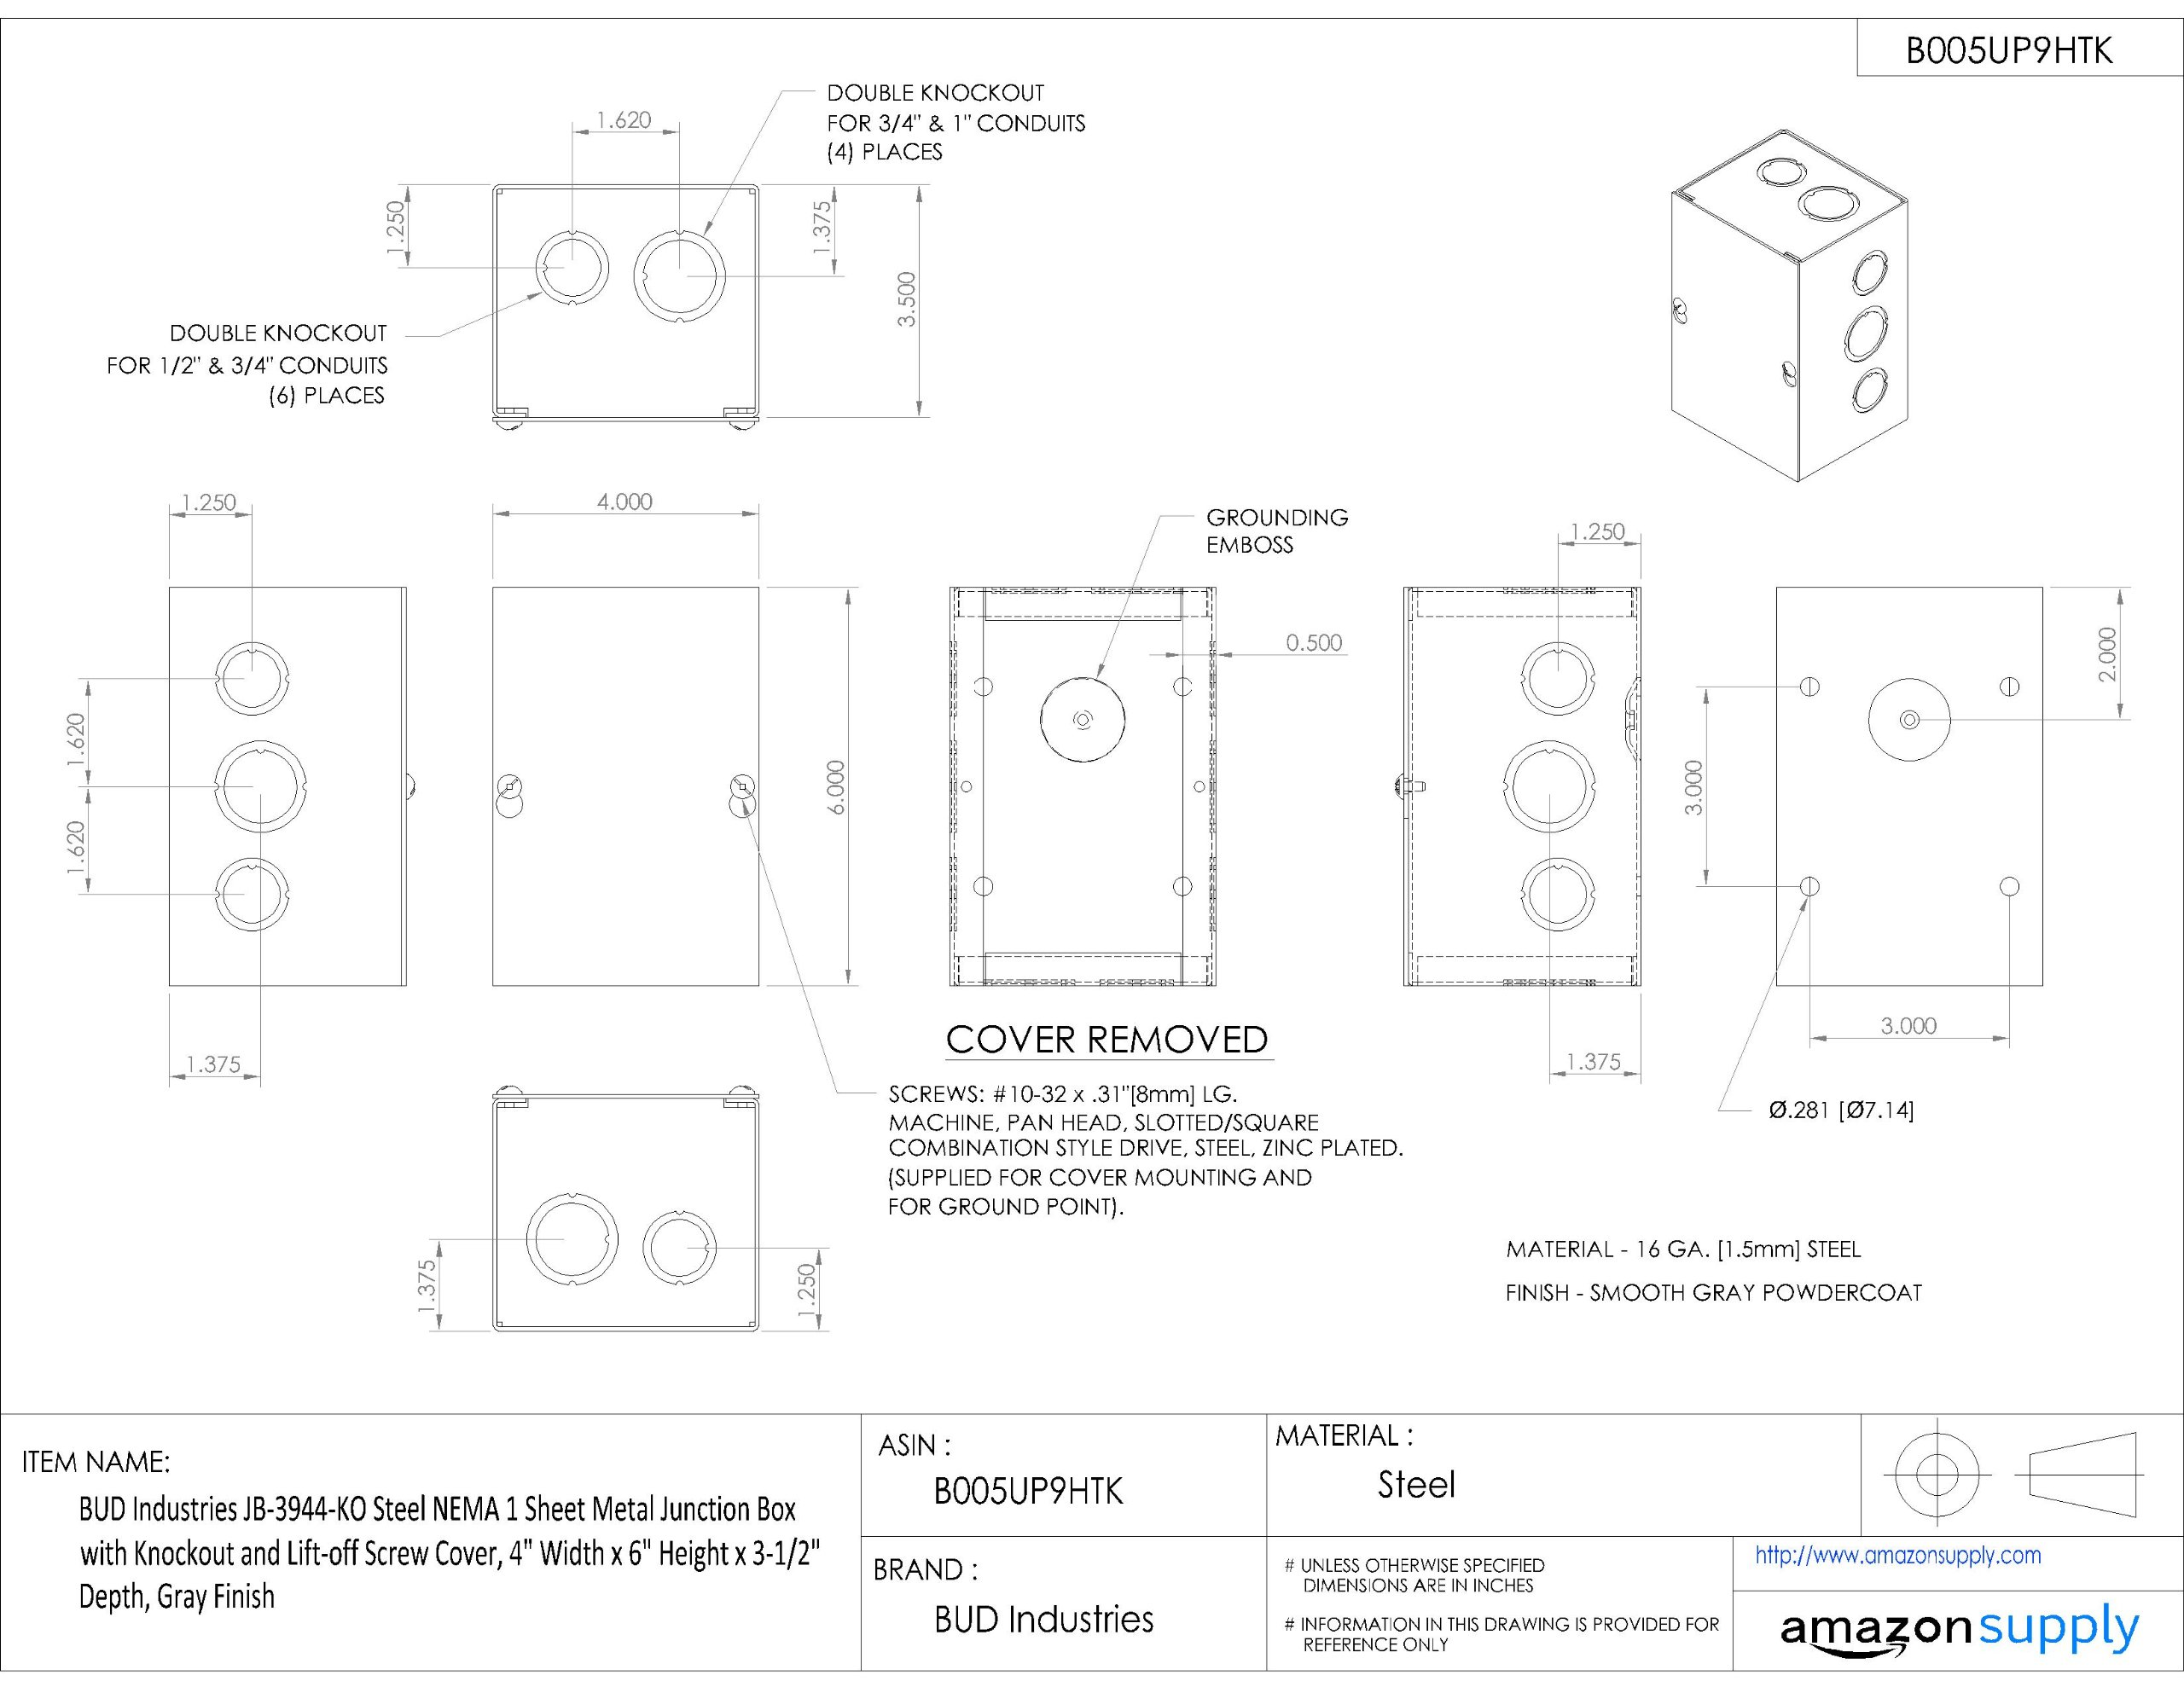 BUD Industries JB-3944-KO Steel NEMA 1 Sheet Metal Junction Box with Knockout and Lift-off Screw Cover, 4'' Width x 6'' Height x 3-1/2'' Depth, Gray Finish